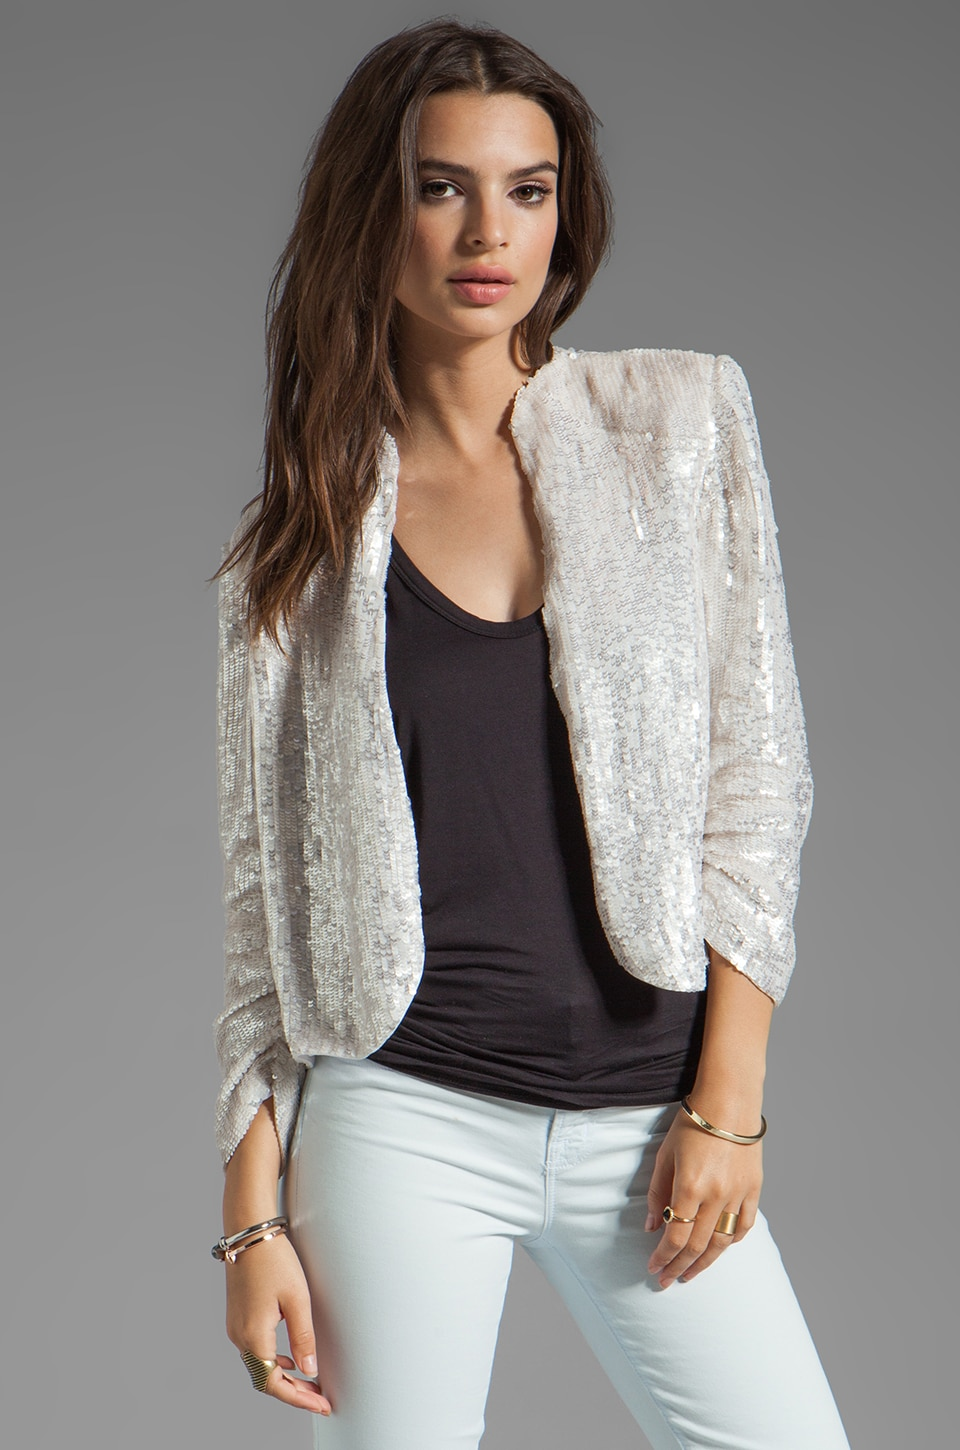 Alice + Olivia Wheeler Embellished Deconstructed Drape Jacket in White